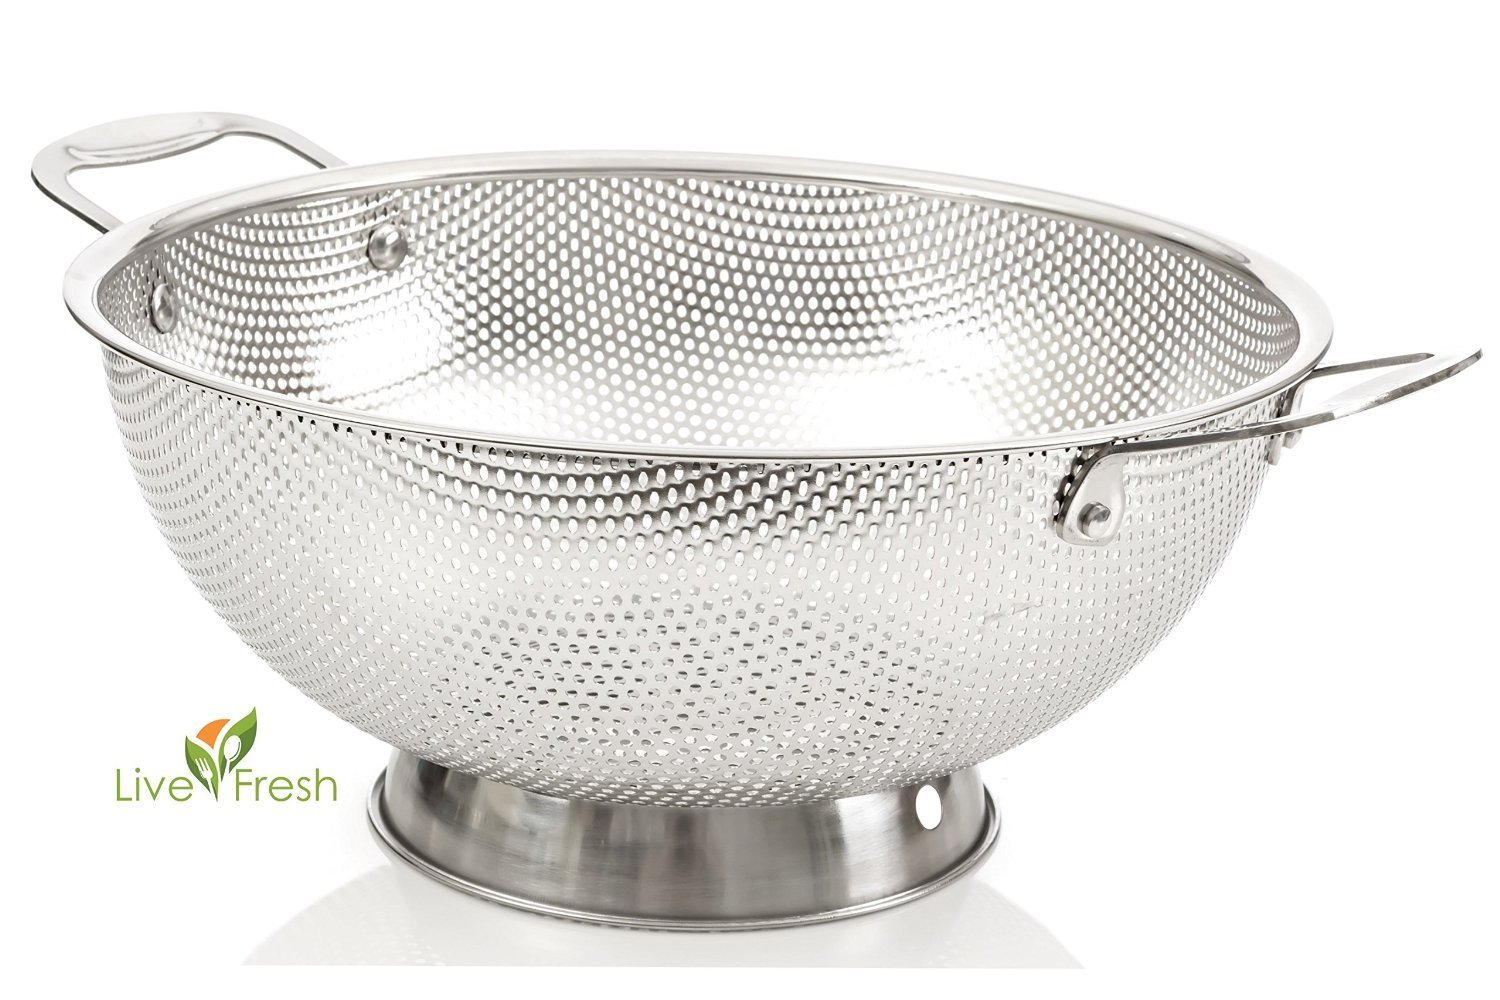 LiveFresh Stainless